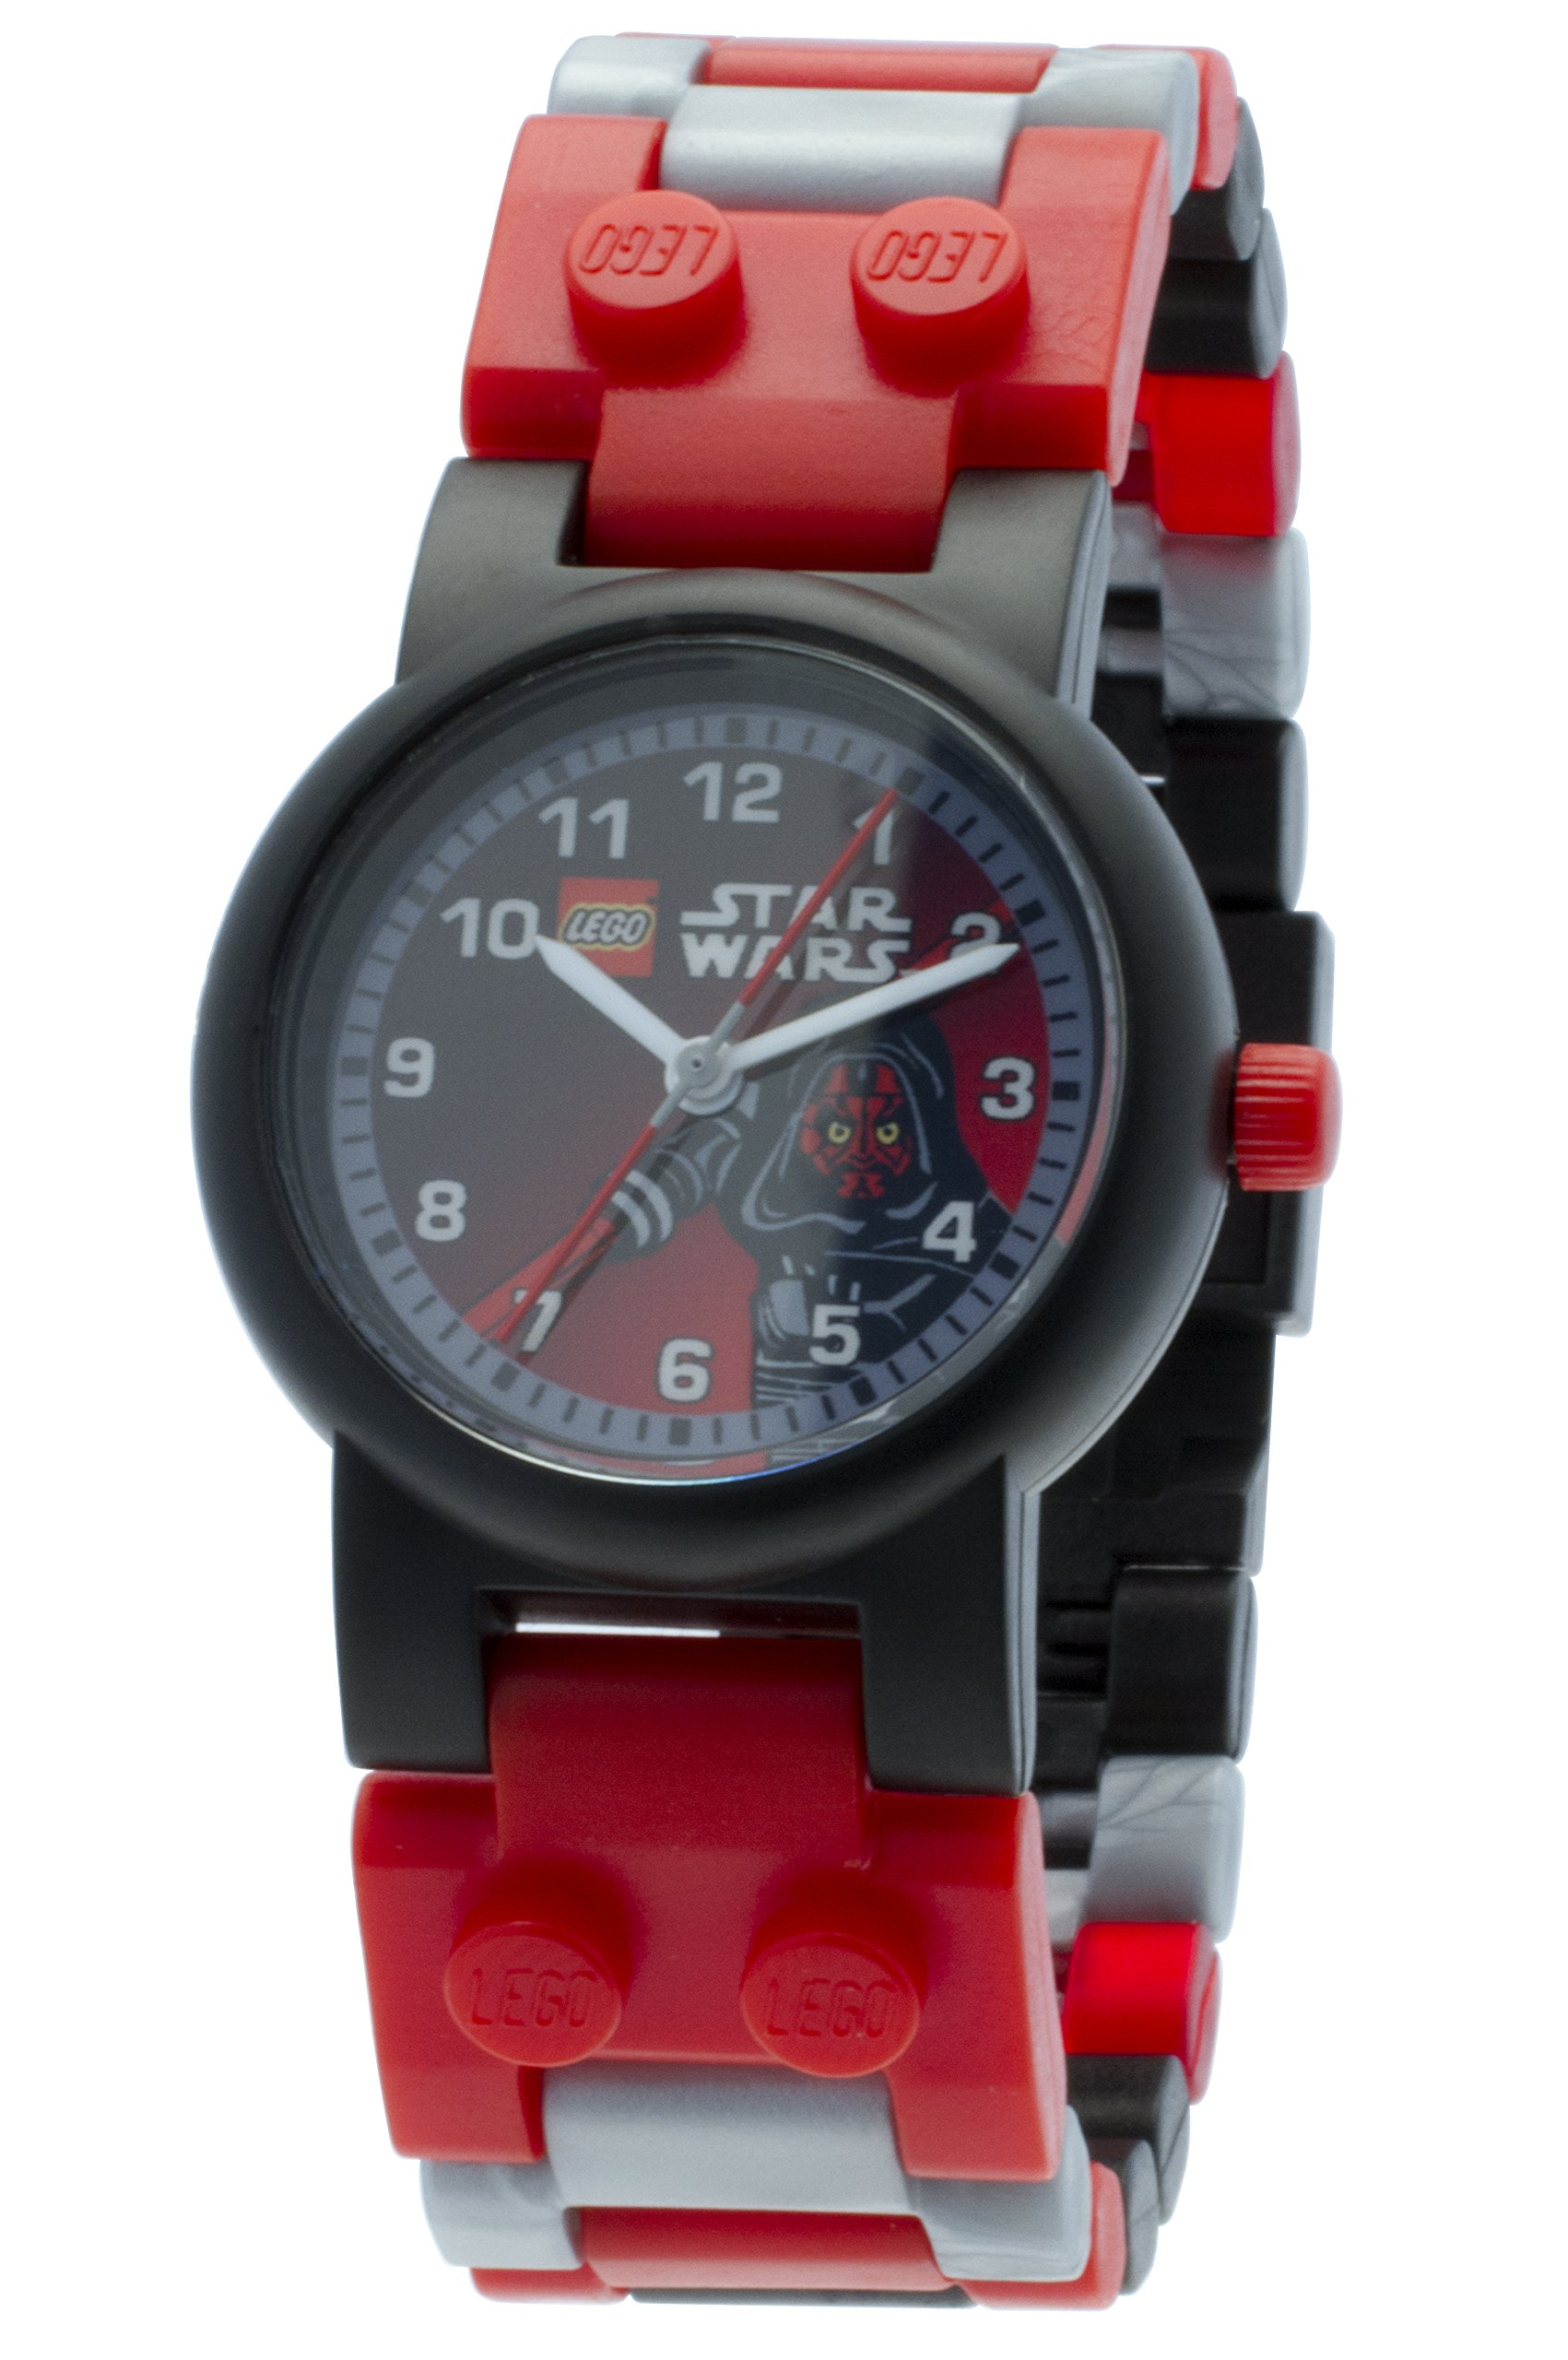 Lego Star Wars 8020332 Darth Maul Kids Buildable Watch With Link Bracelet And Minifigure Black Red Plastic 28mm Case Diameter Analogue Quartz Boy Girl Official Buy Online In